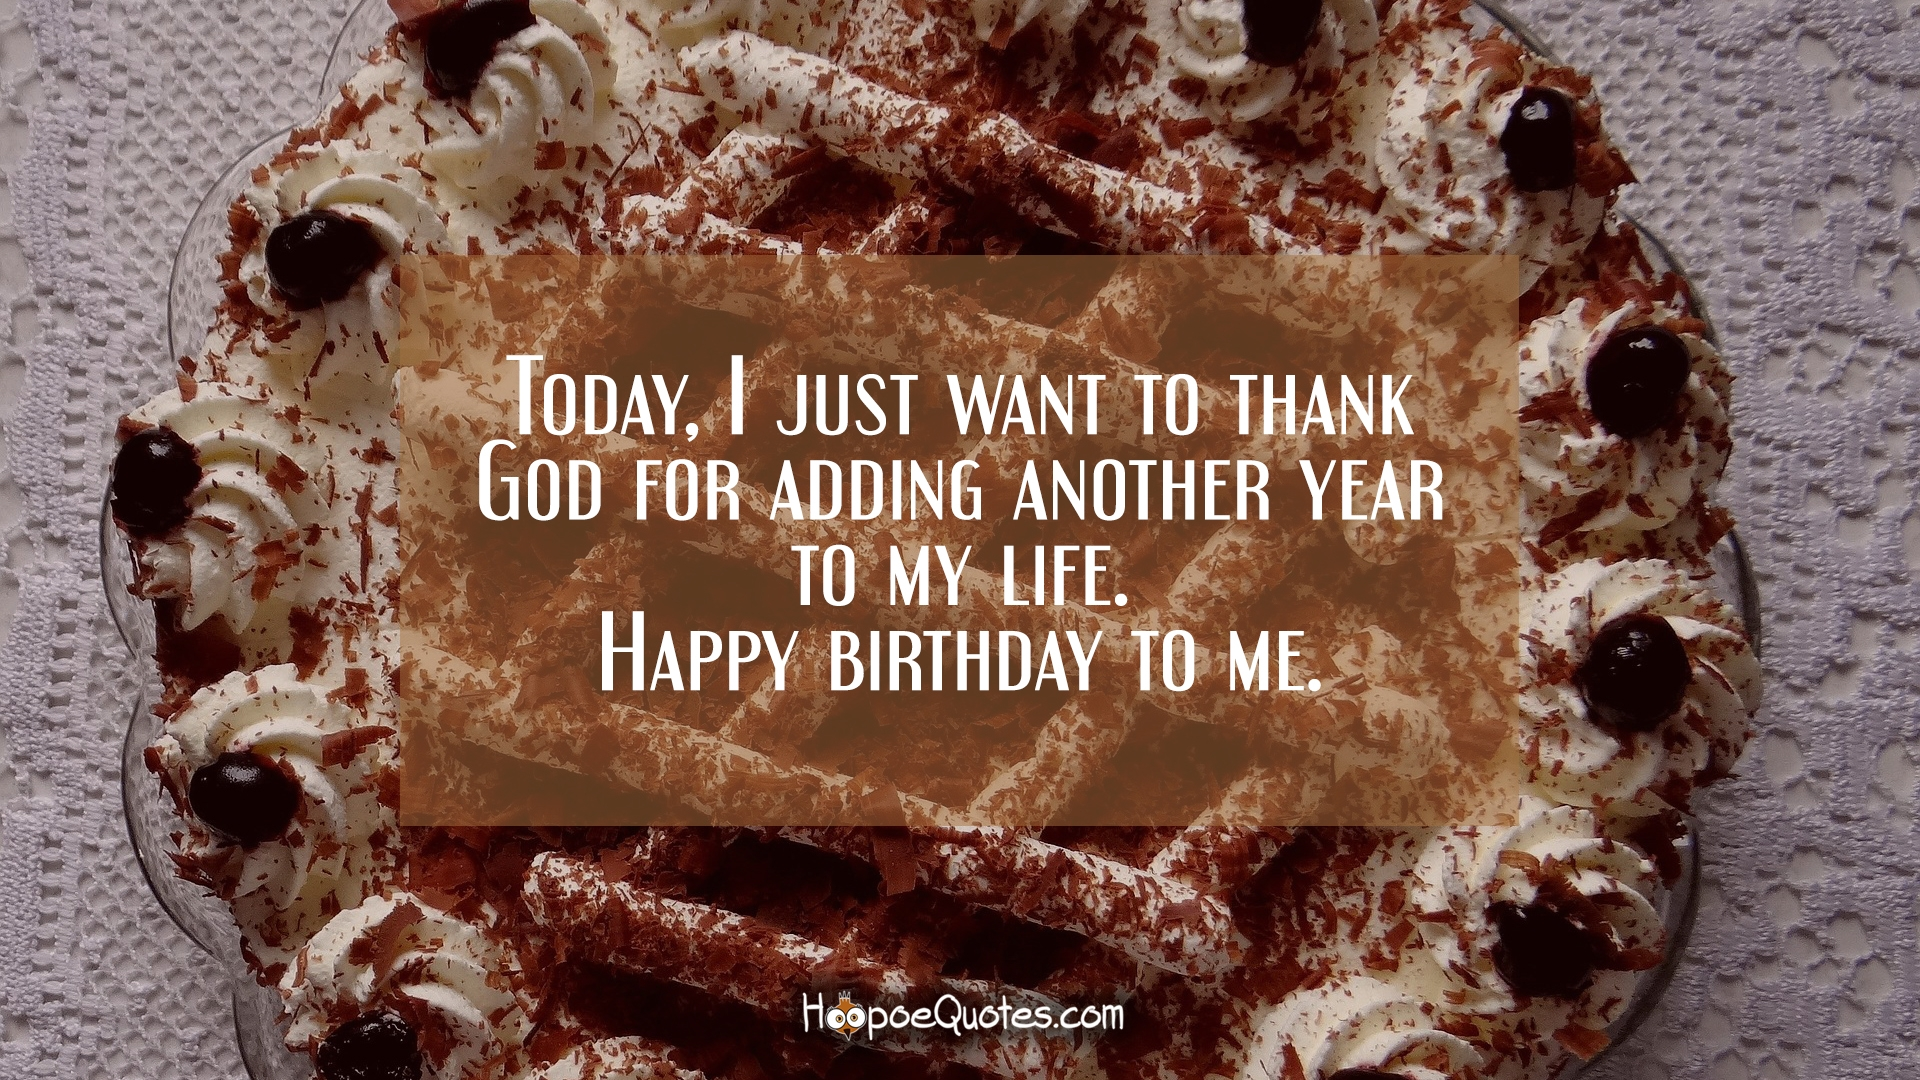 Today I Just Want To Thank God For Adding Another Year To My Life Happy Birthday To Me Hoopoequotes